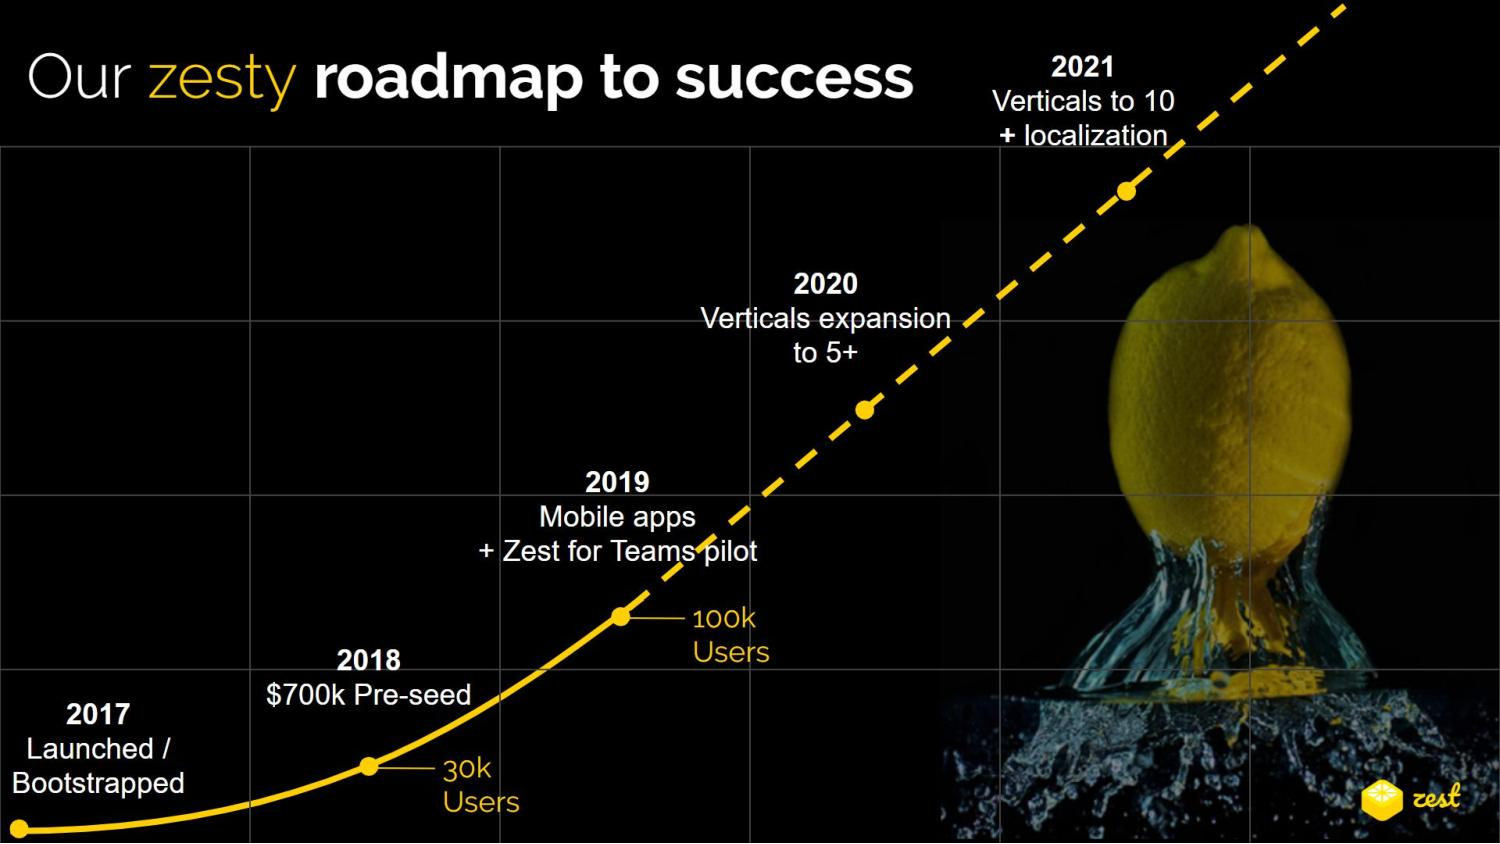 Depiction of Zest.is's growth from the 2017 bootstrapped launch to its 2021 plans to expand to 10 verticals with localization